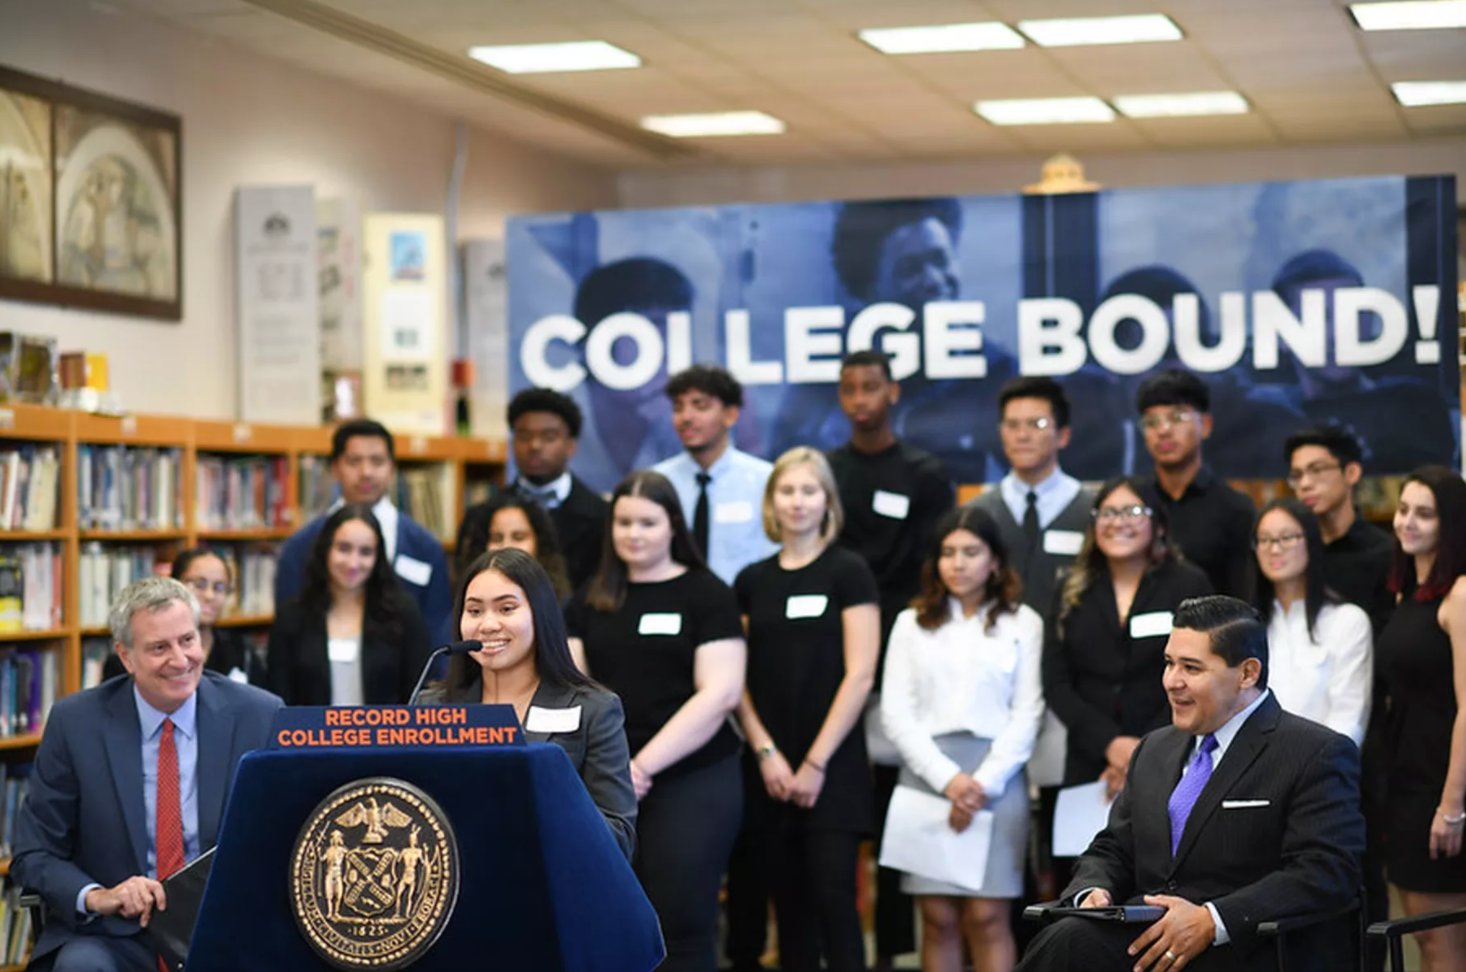 Mayor Bill de Blasio and Chancellor Richard Carranza listen to an alum  talk about her experience enrolling in college.